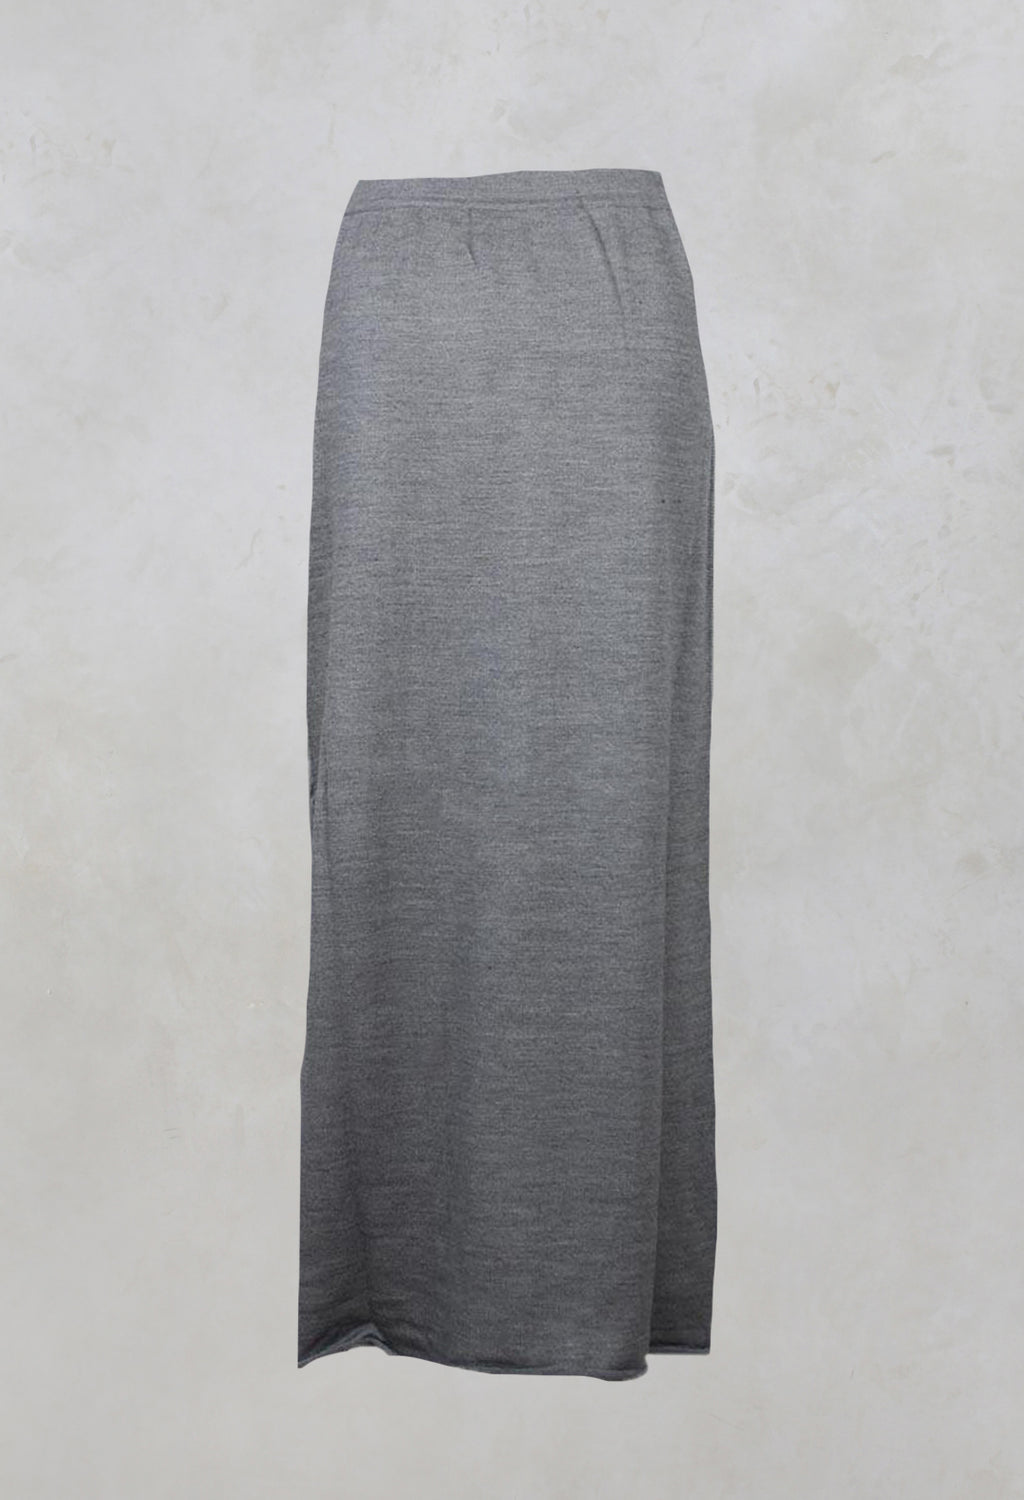 Long Fine Knit Skirt with Pocket in Grey